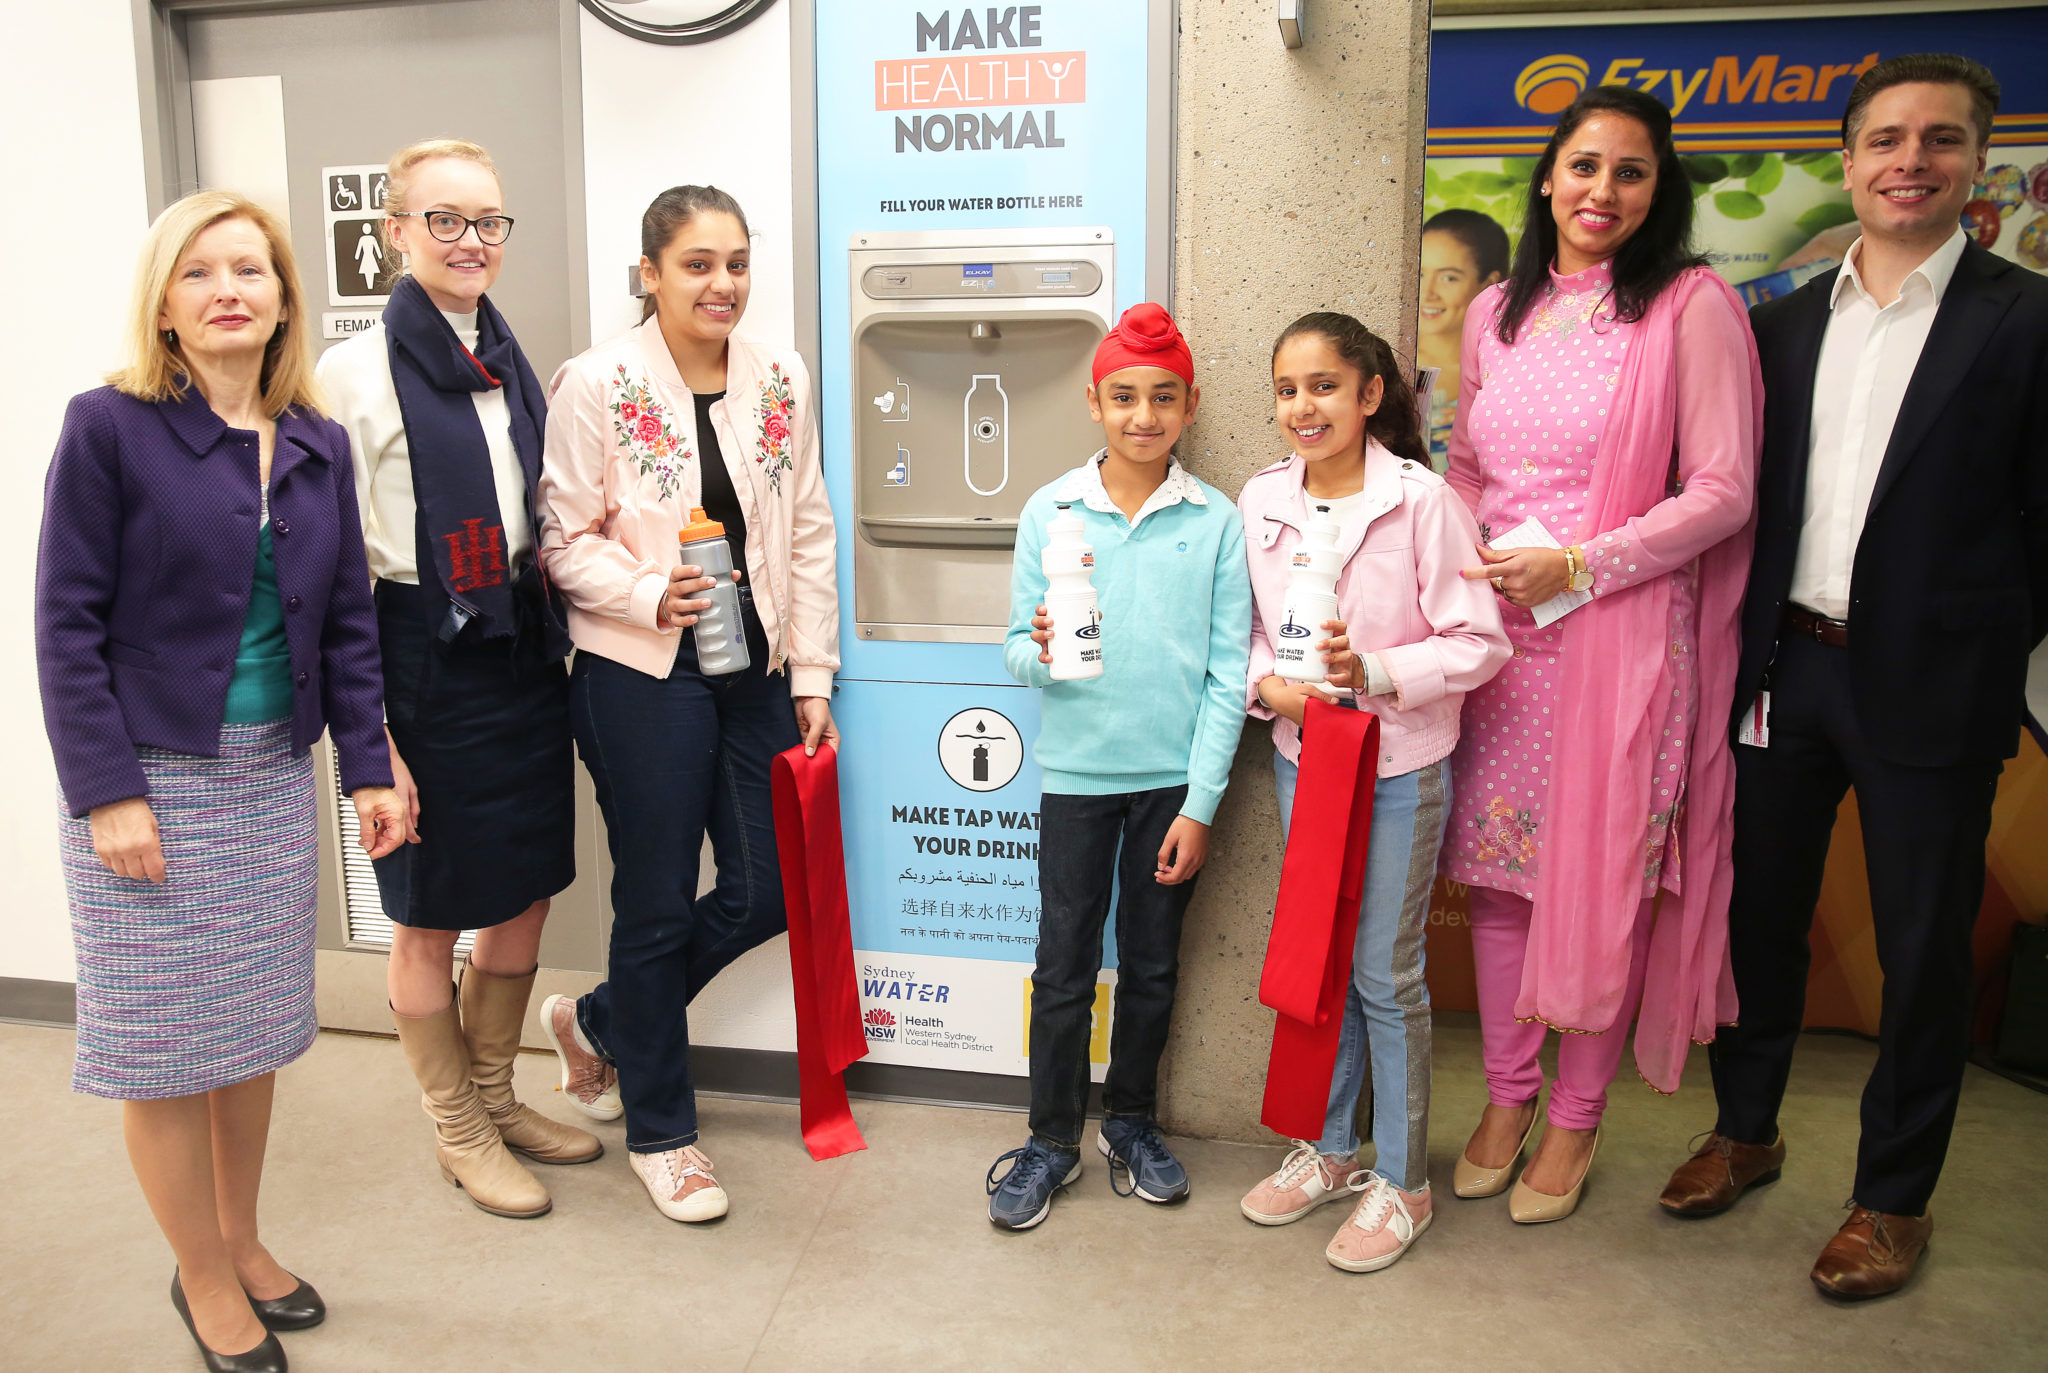 Westmead Refill Station Launch Event